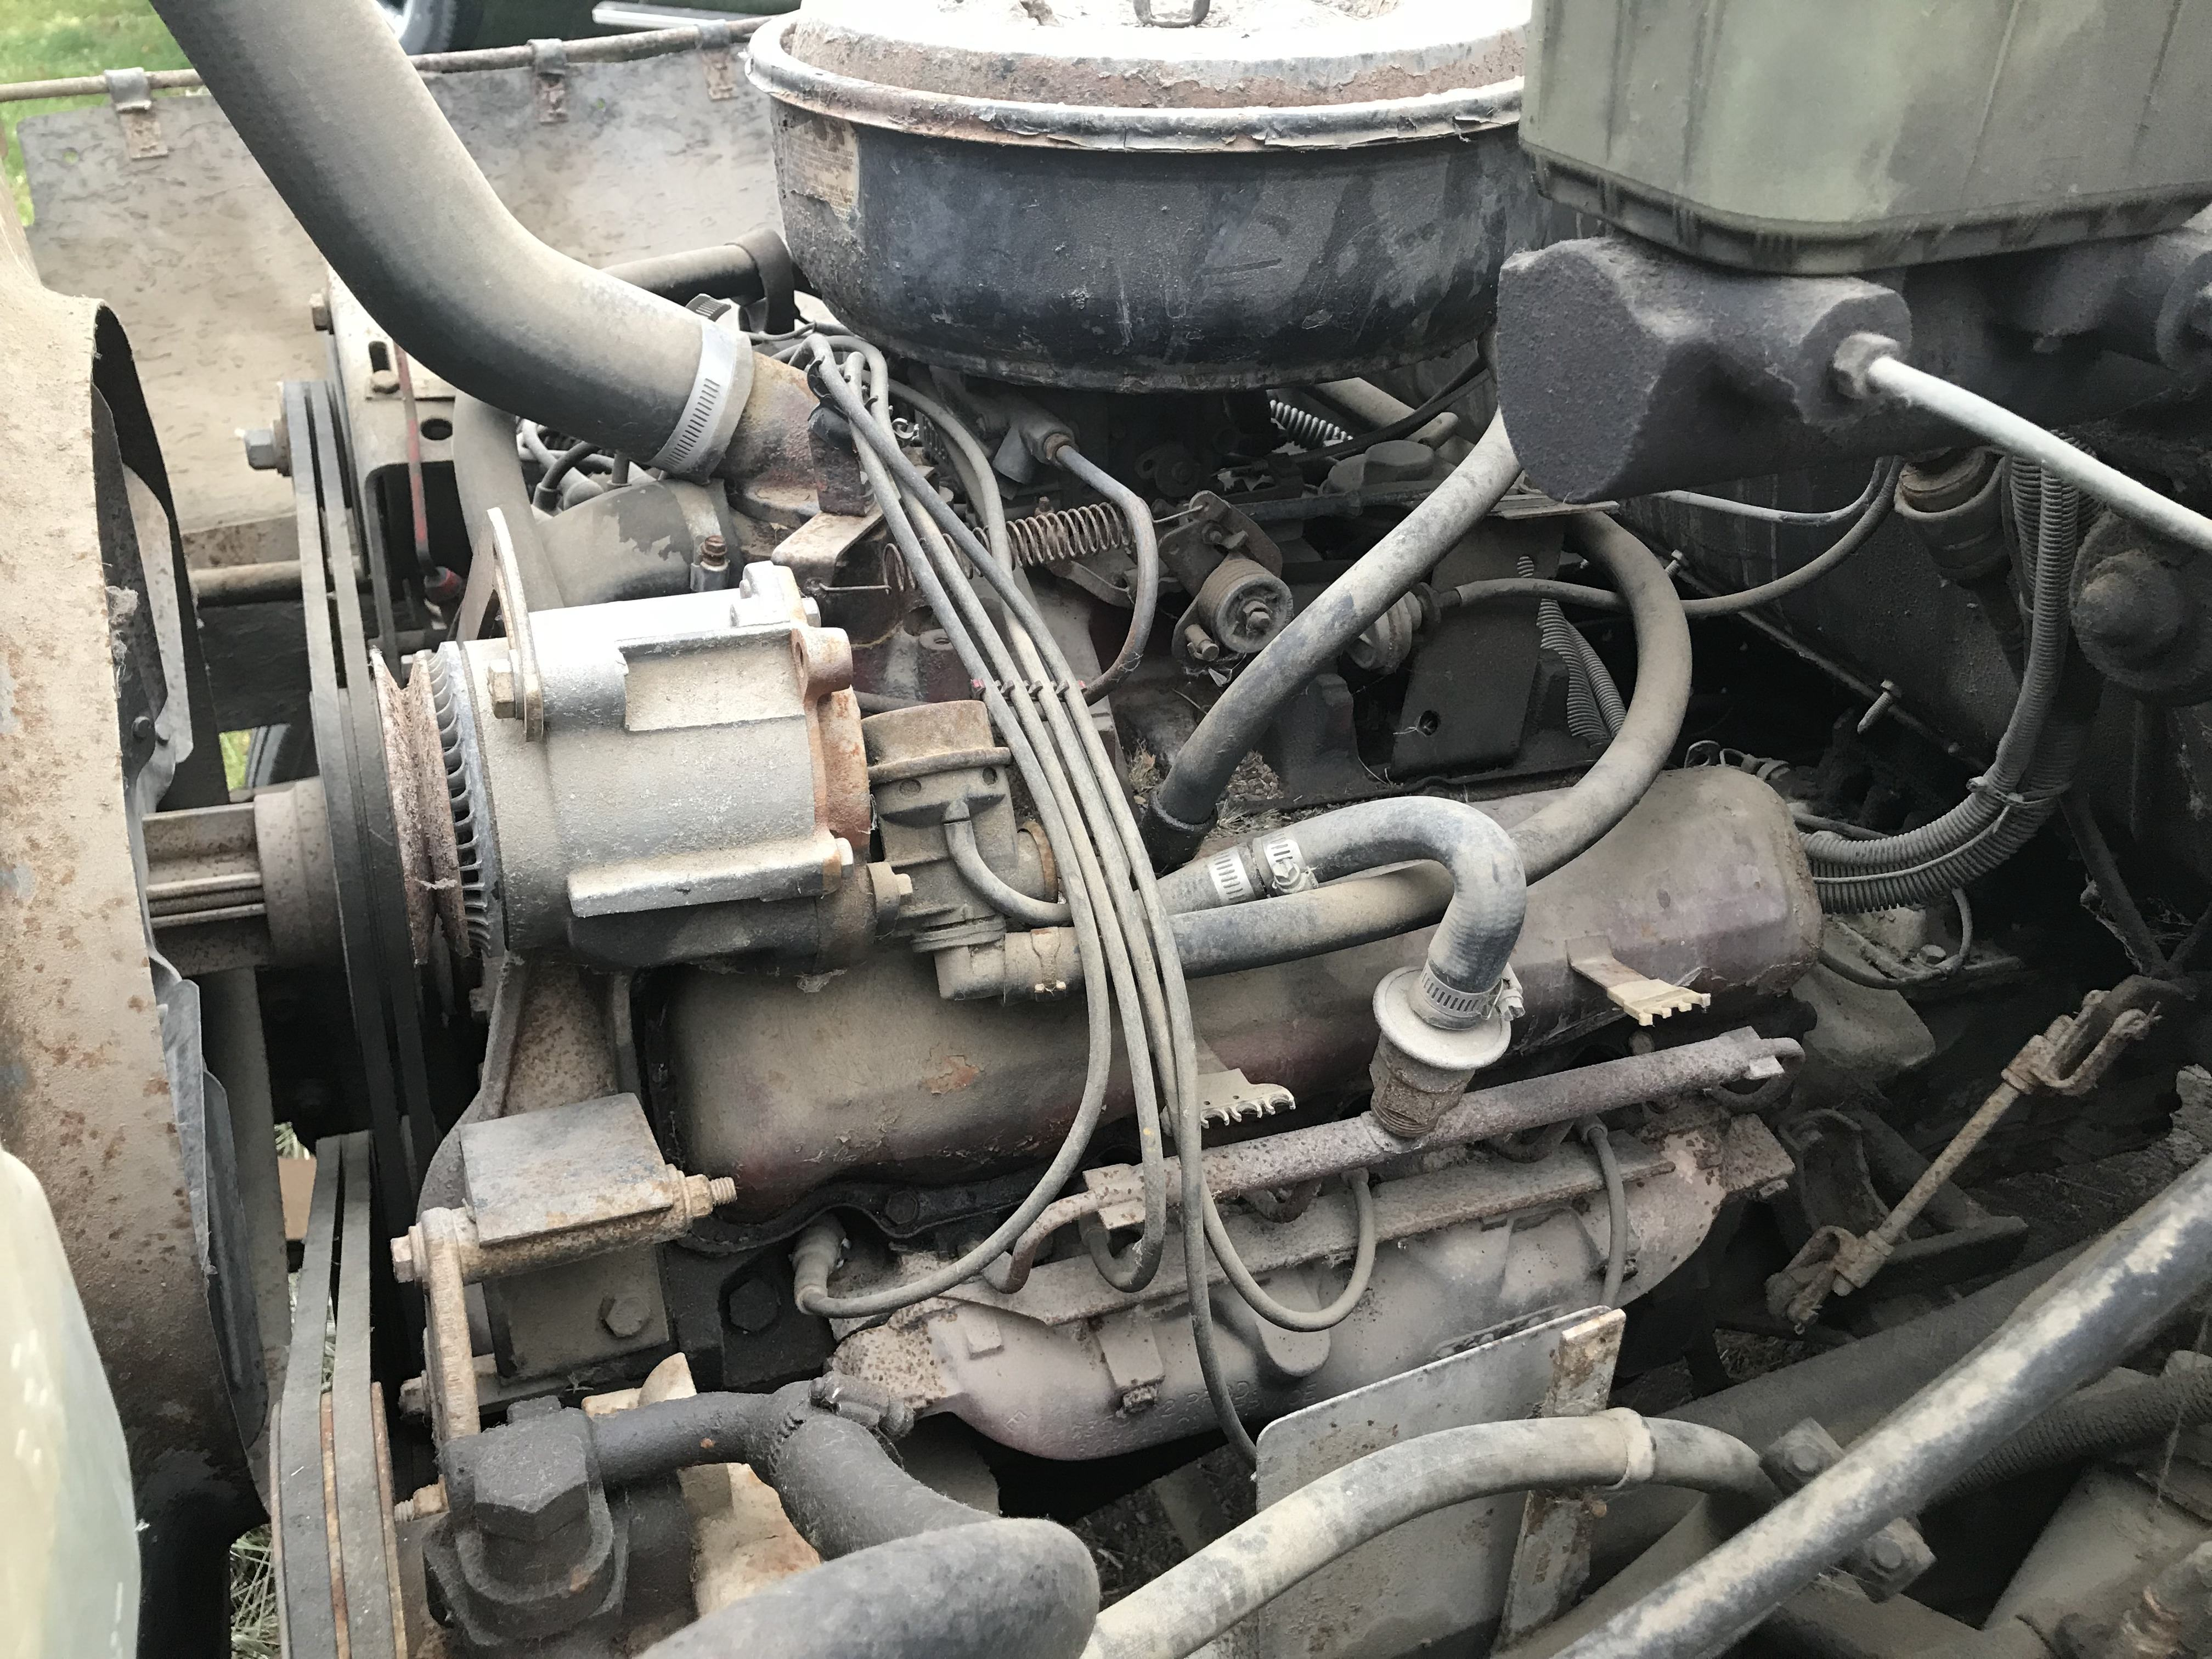 1984 International S1724 Shifting Pattern And Mystery Engine